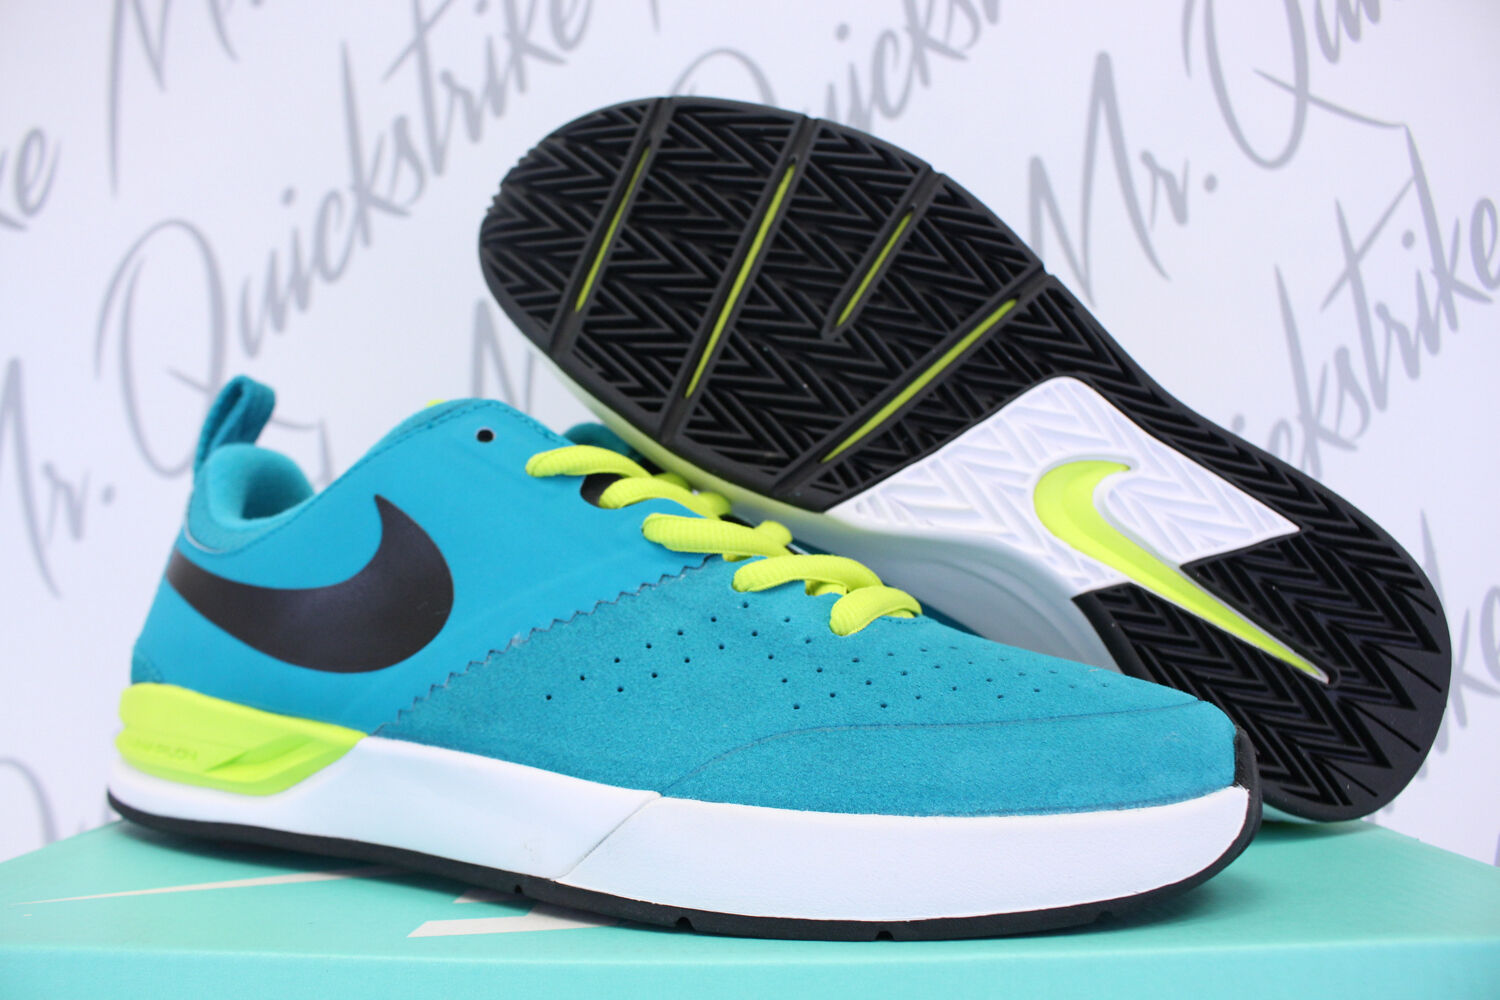 NIKE PROJECT BA SB SZ 8 BRIAN ANDERSON TURBO GREEN WHITE RUST FACTOR 599698 316